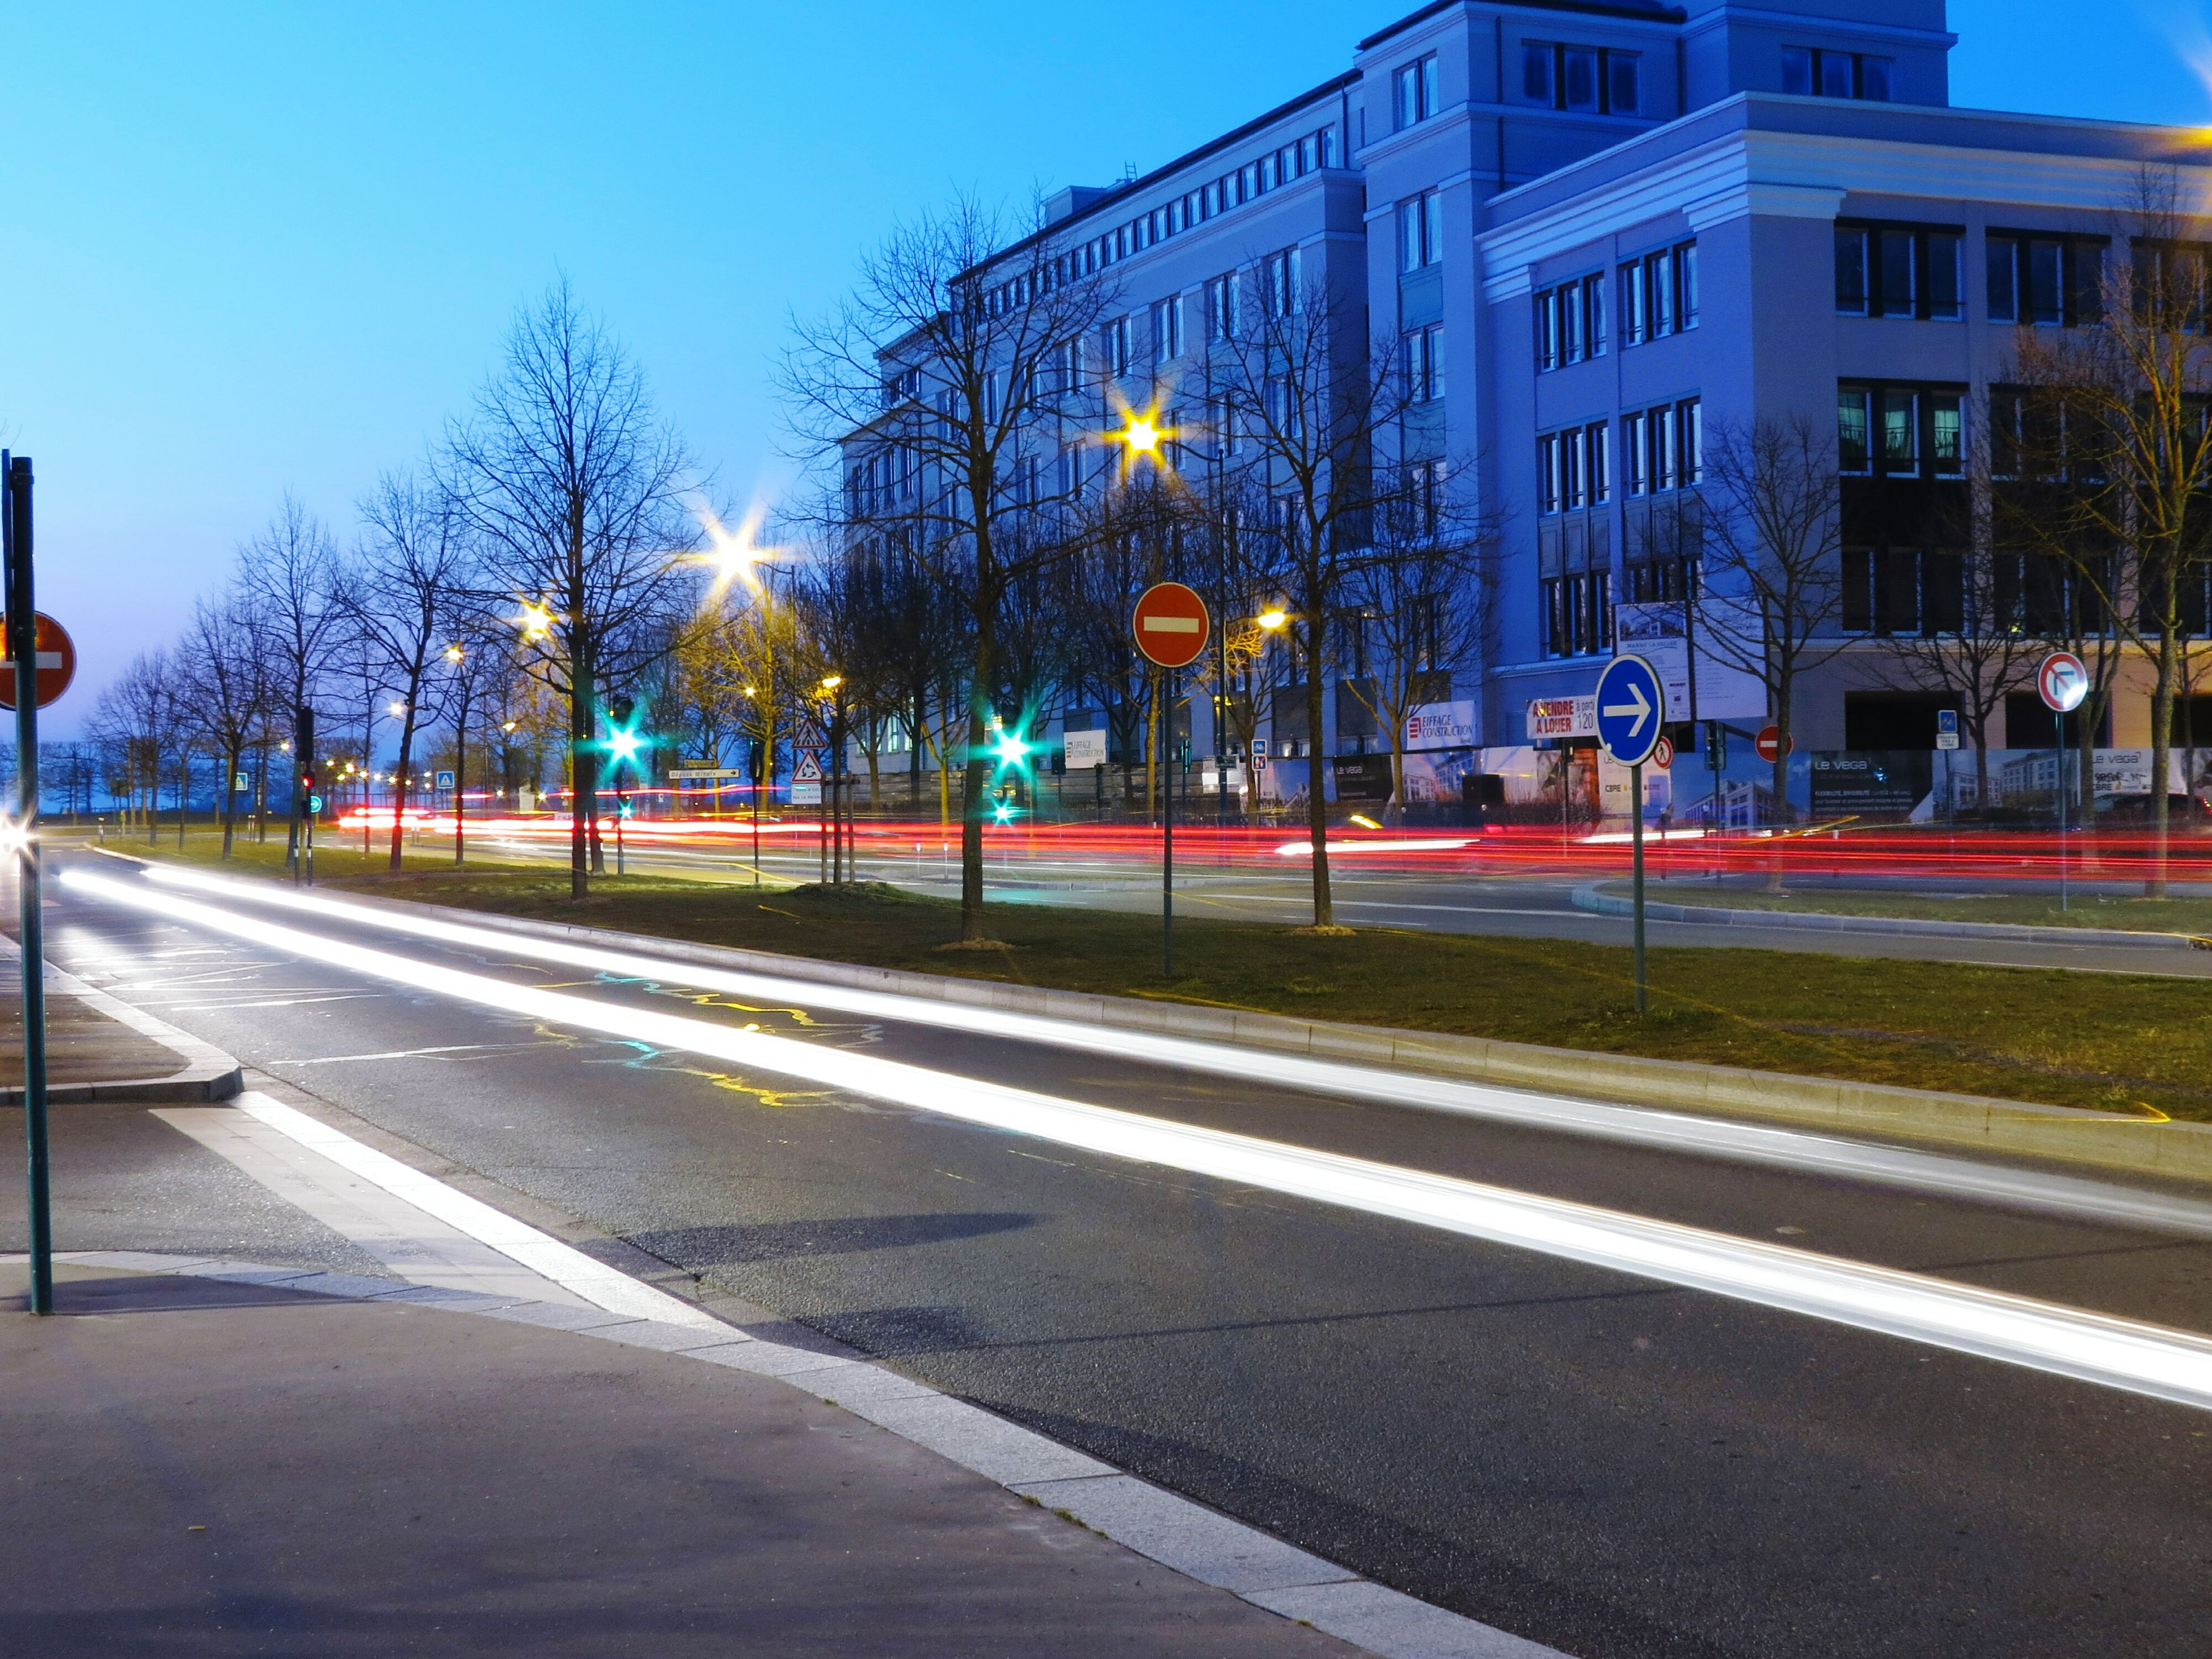 transportation, illuminated, road, building exterior, street light, street, city, road marking, long exposure, architecture, built structure, sky, light trail, night, speed, motion, the way forward, city street, car, clear sky